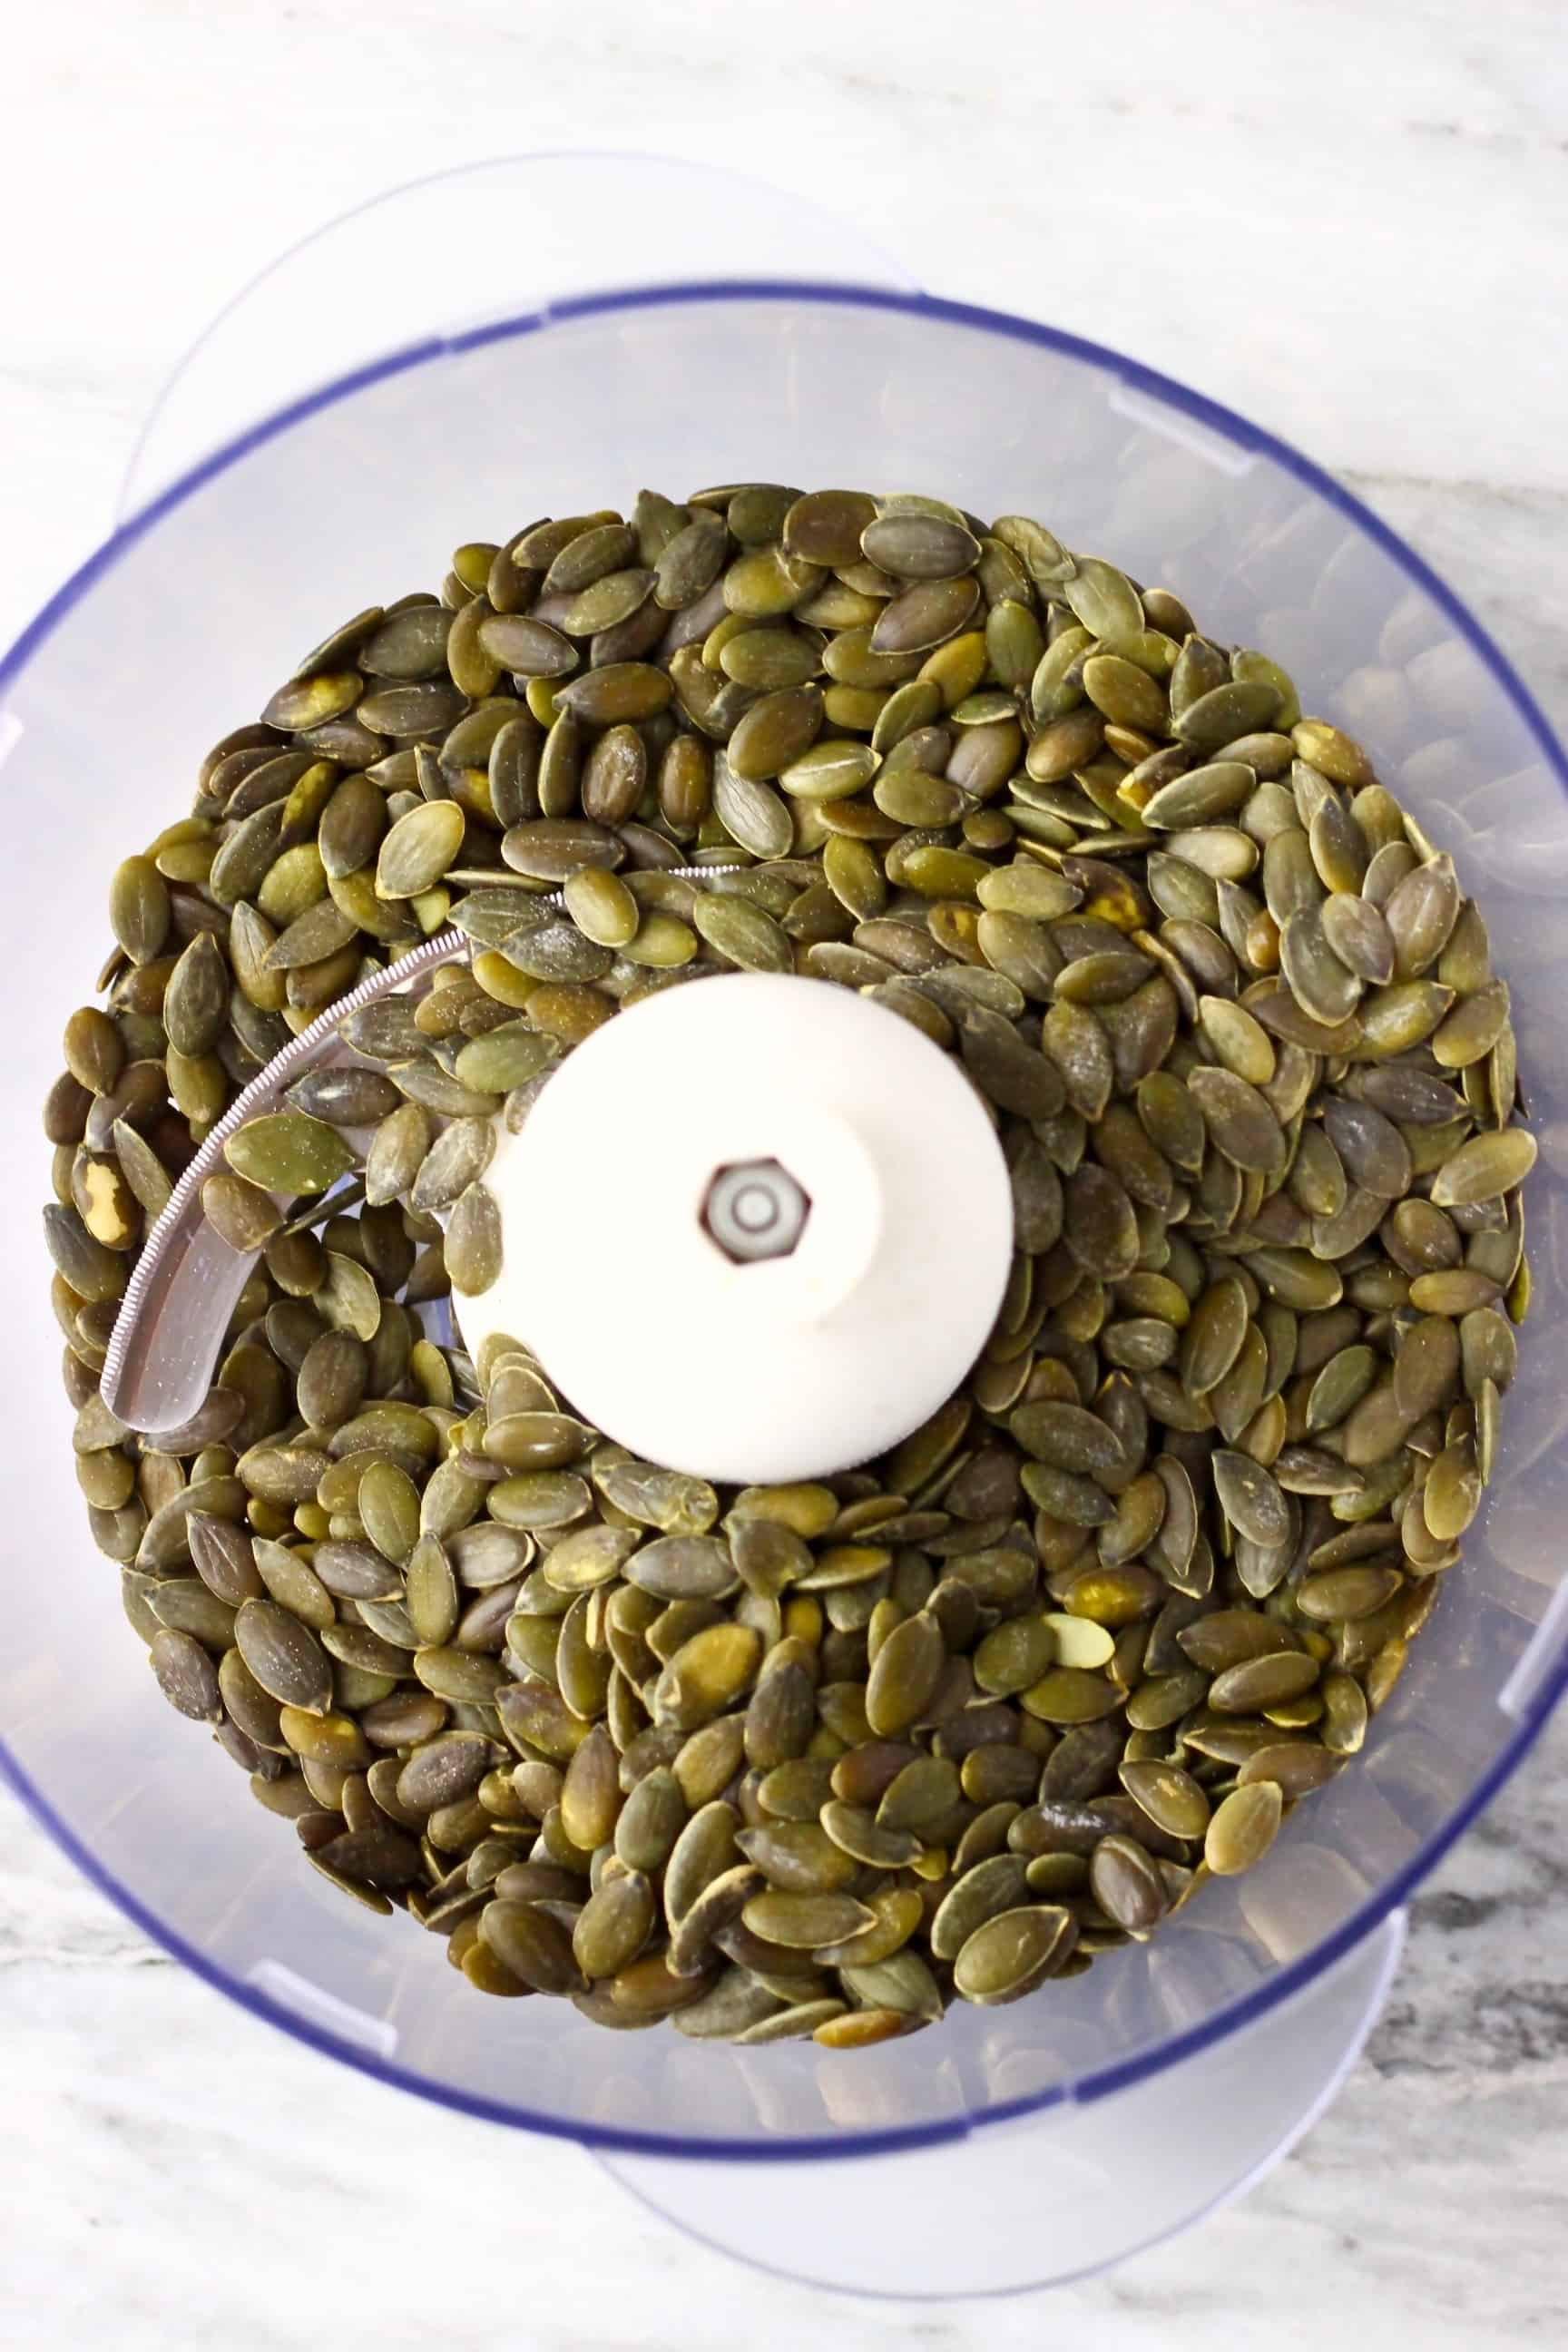 Pumpkin seeds in a food processor against a marble background